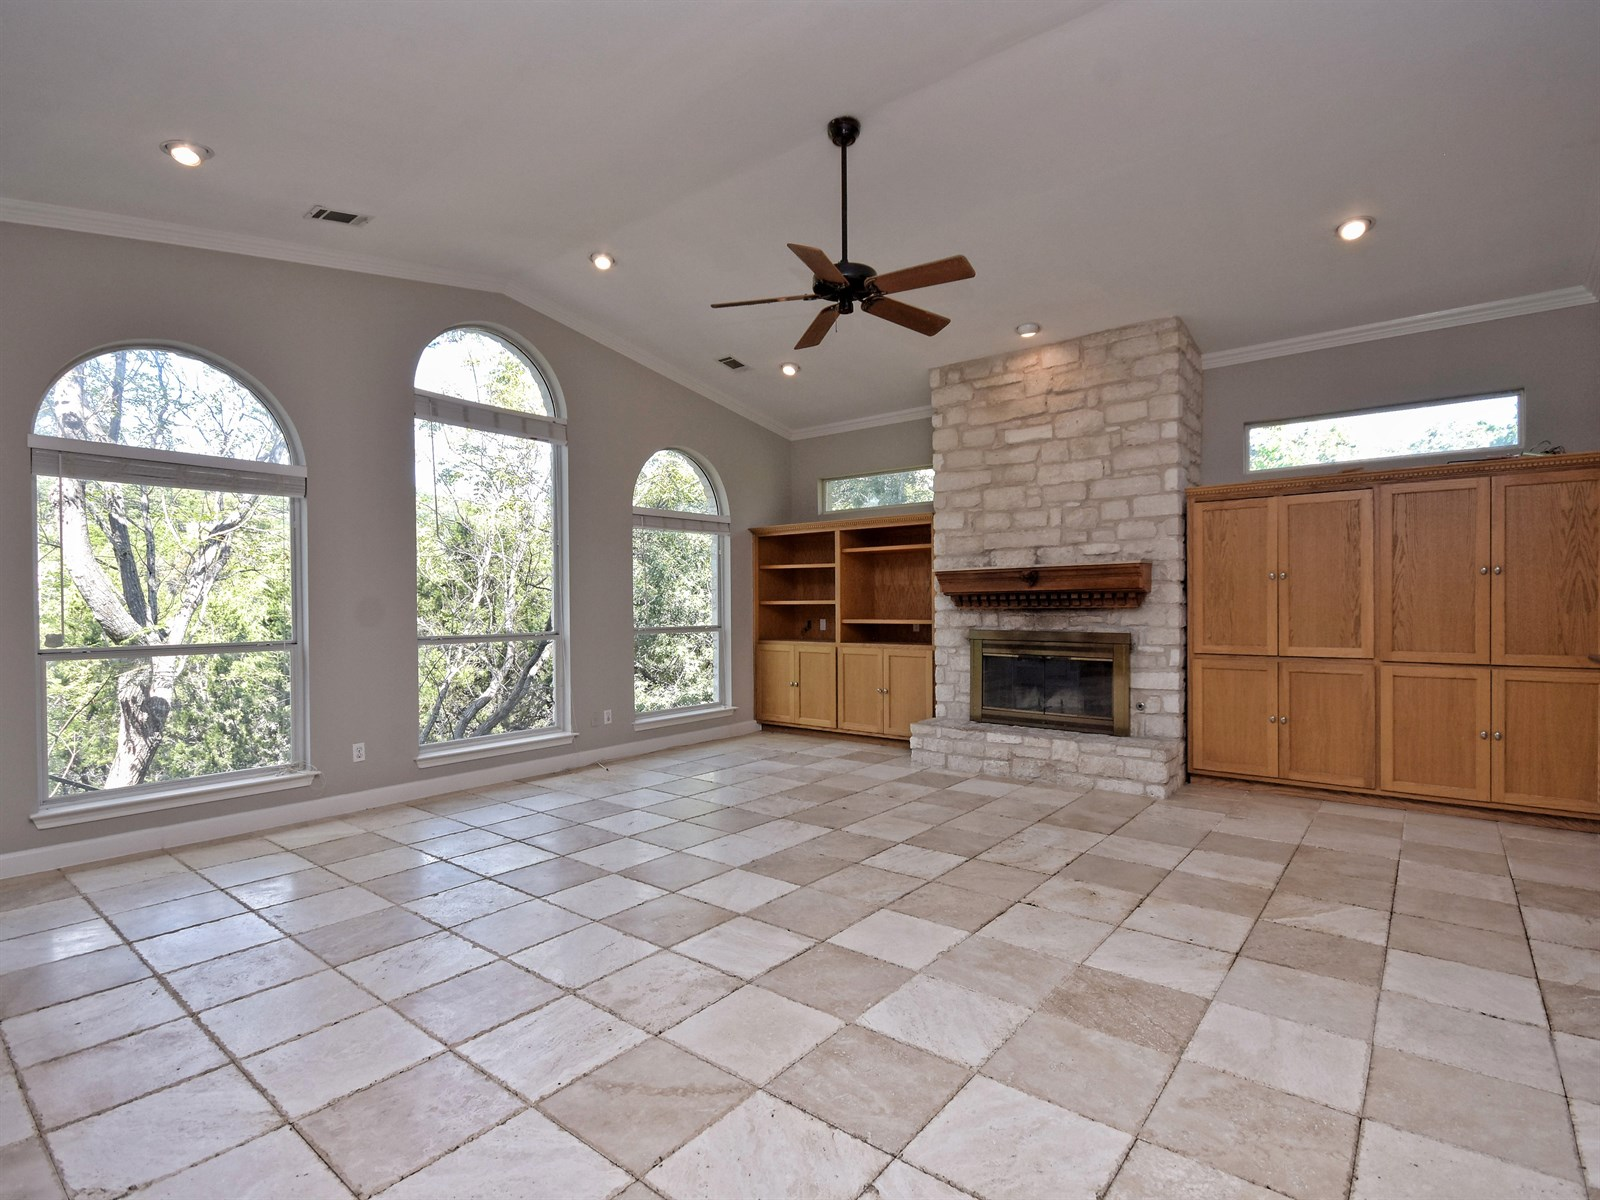 708 Bermuda Lakeway TX | Lori Wakefield REALTOR | Keller Williams Lake Travis